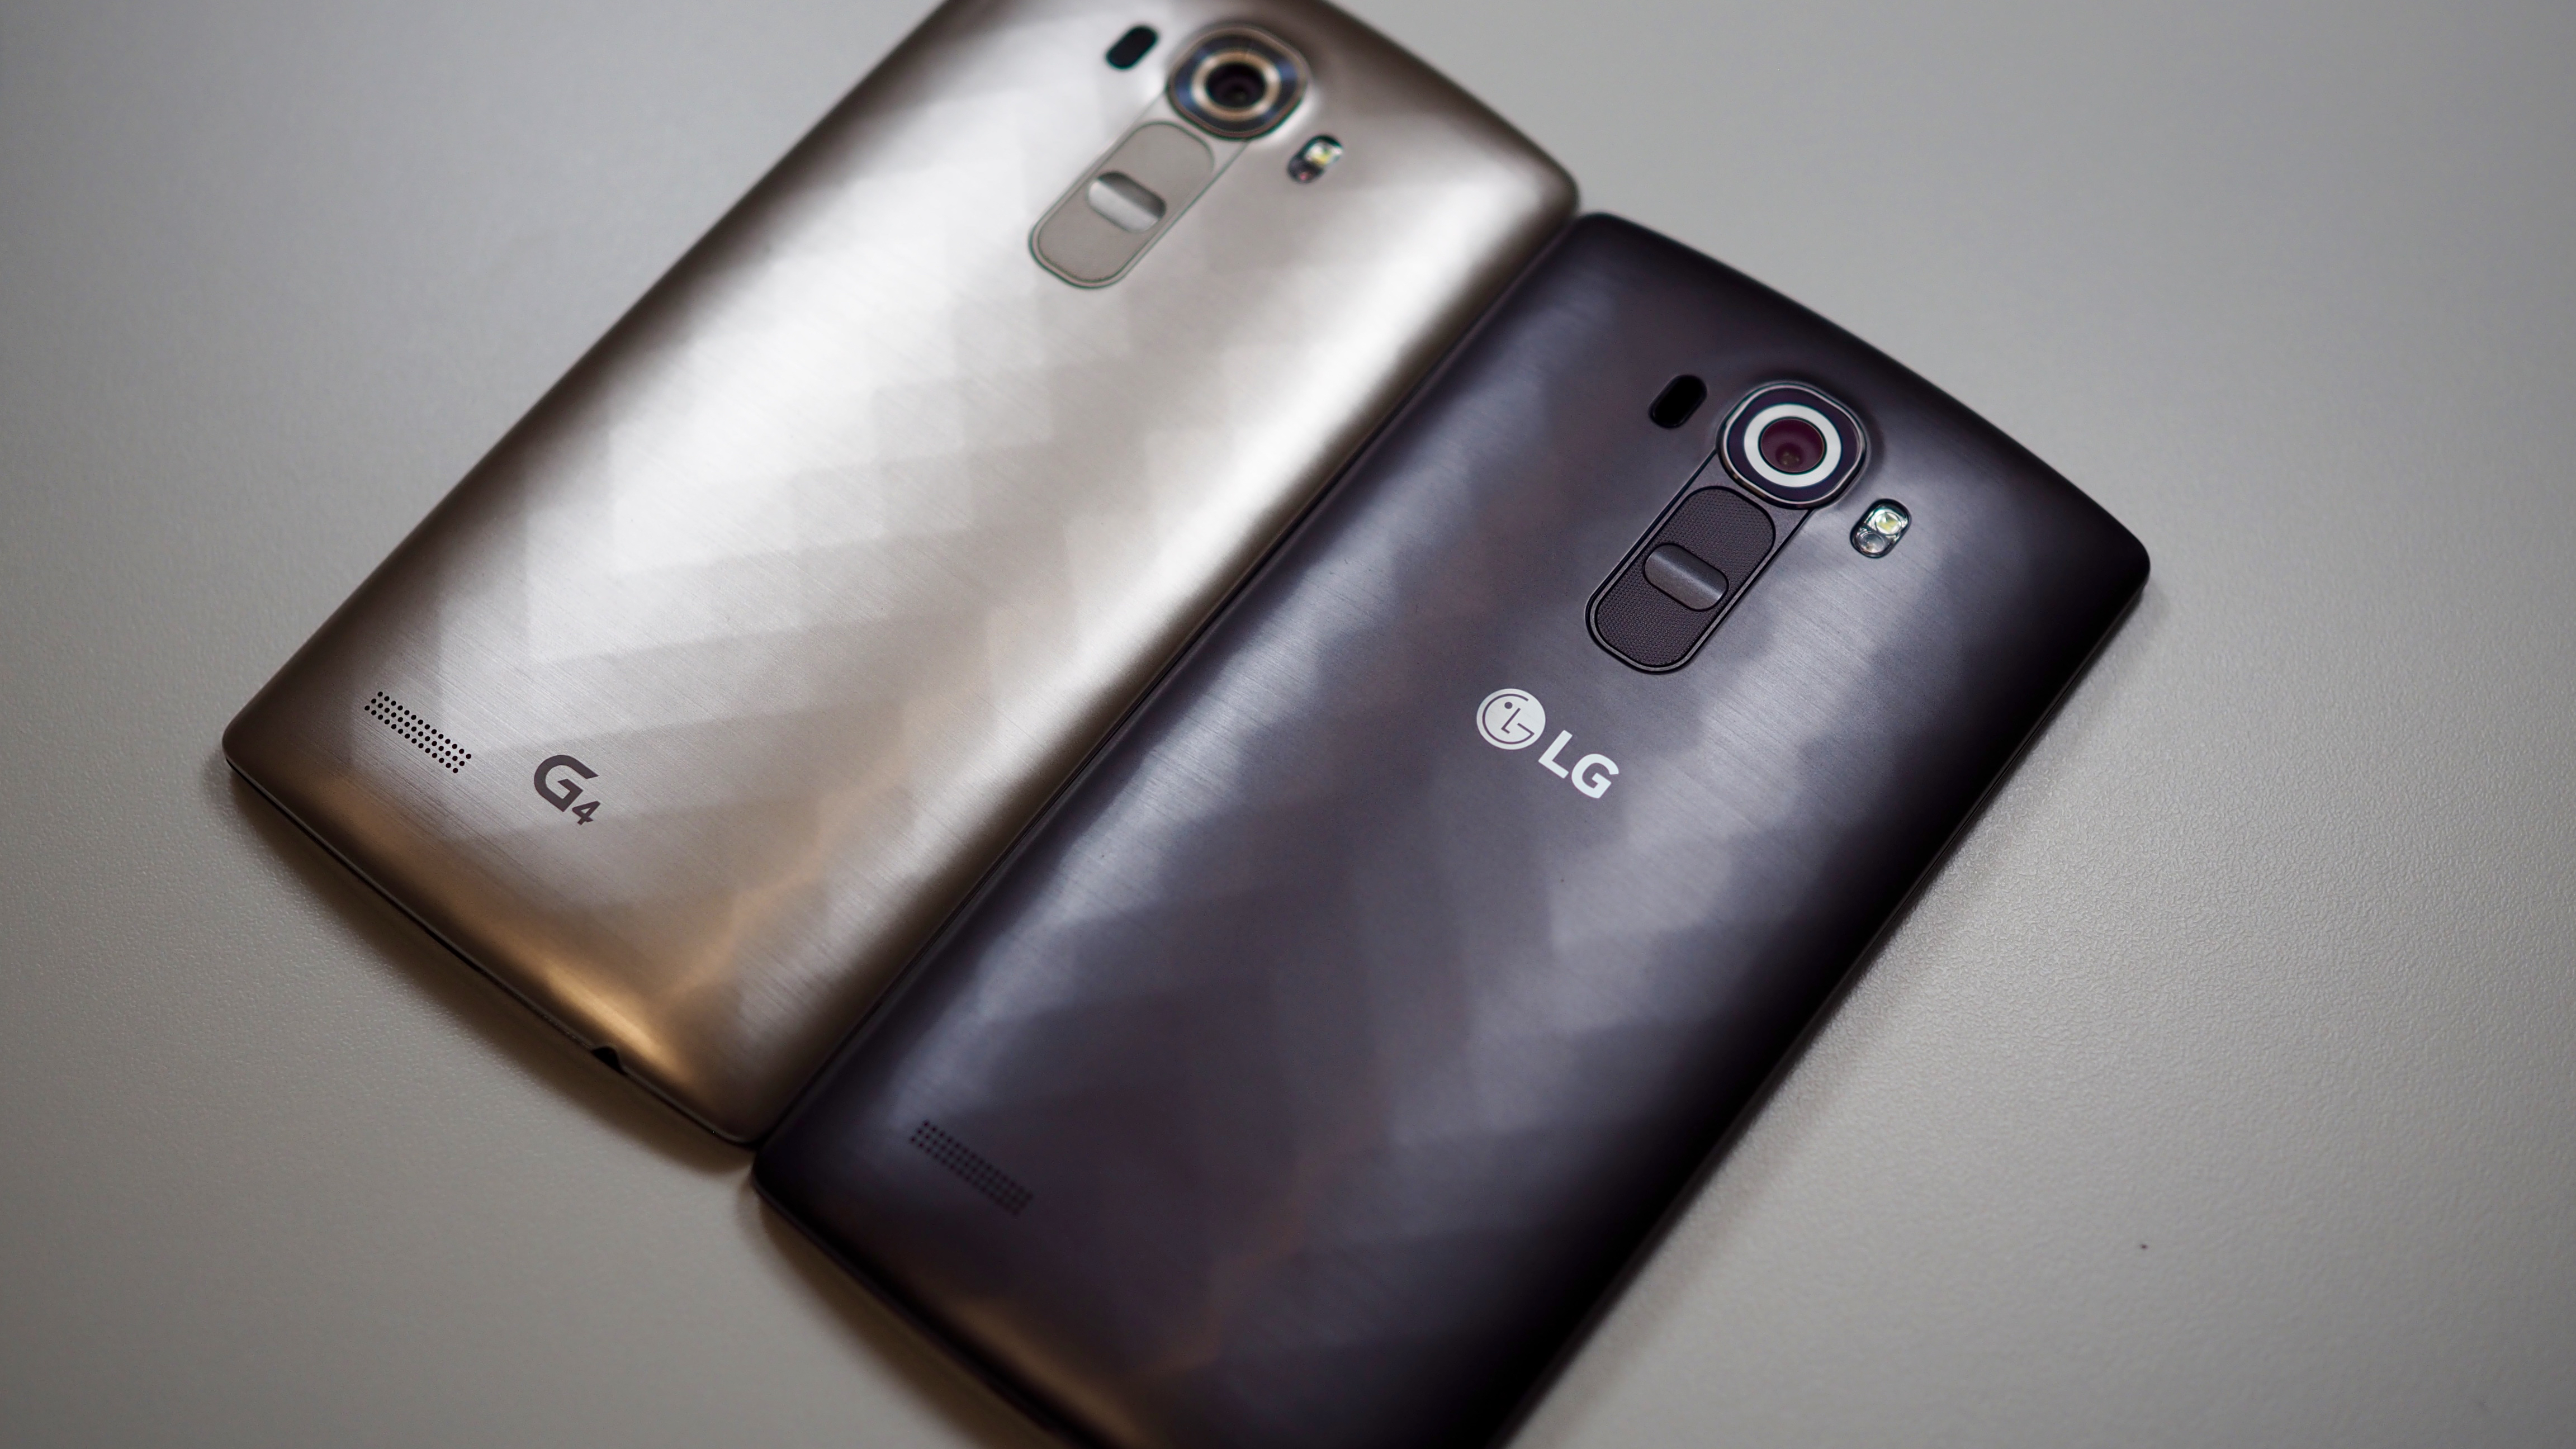 LG G4: The new Flagship is here - A Beard's View